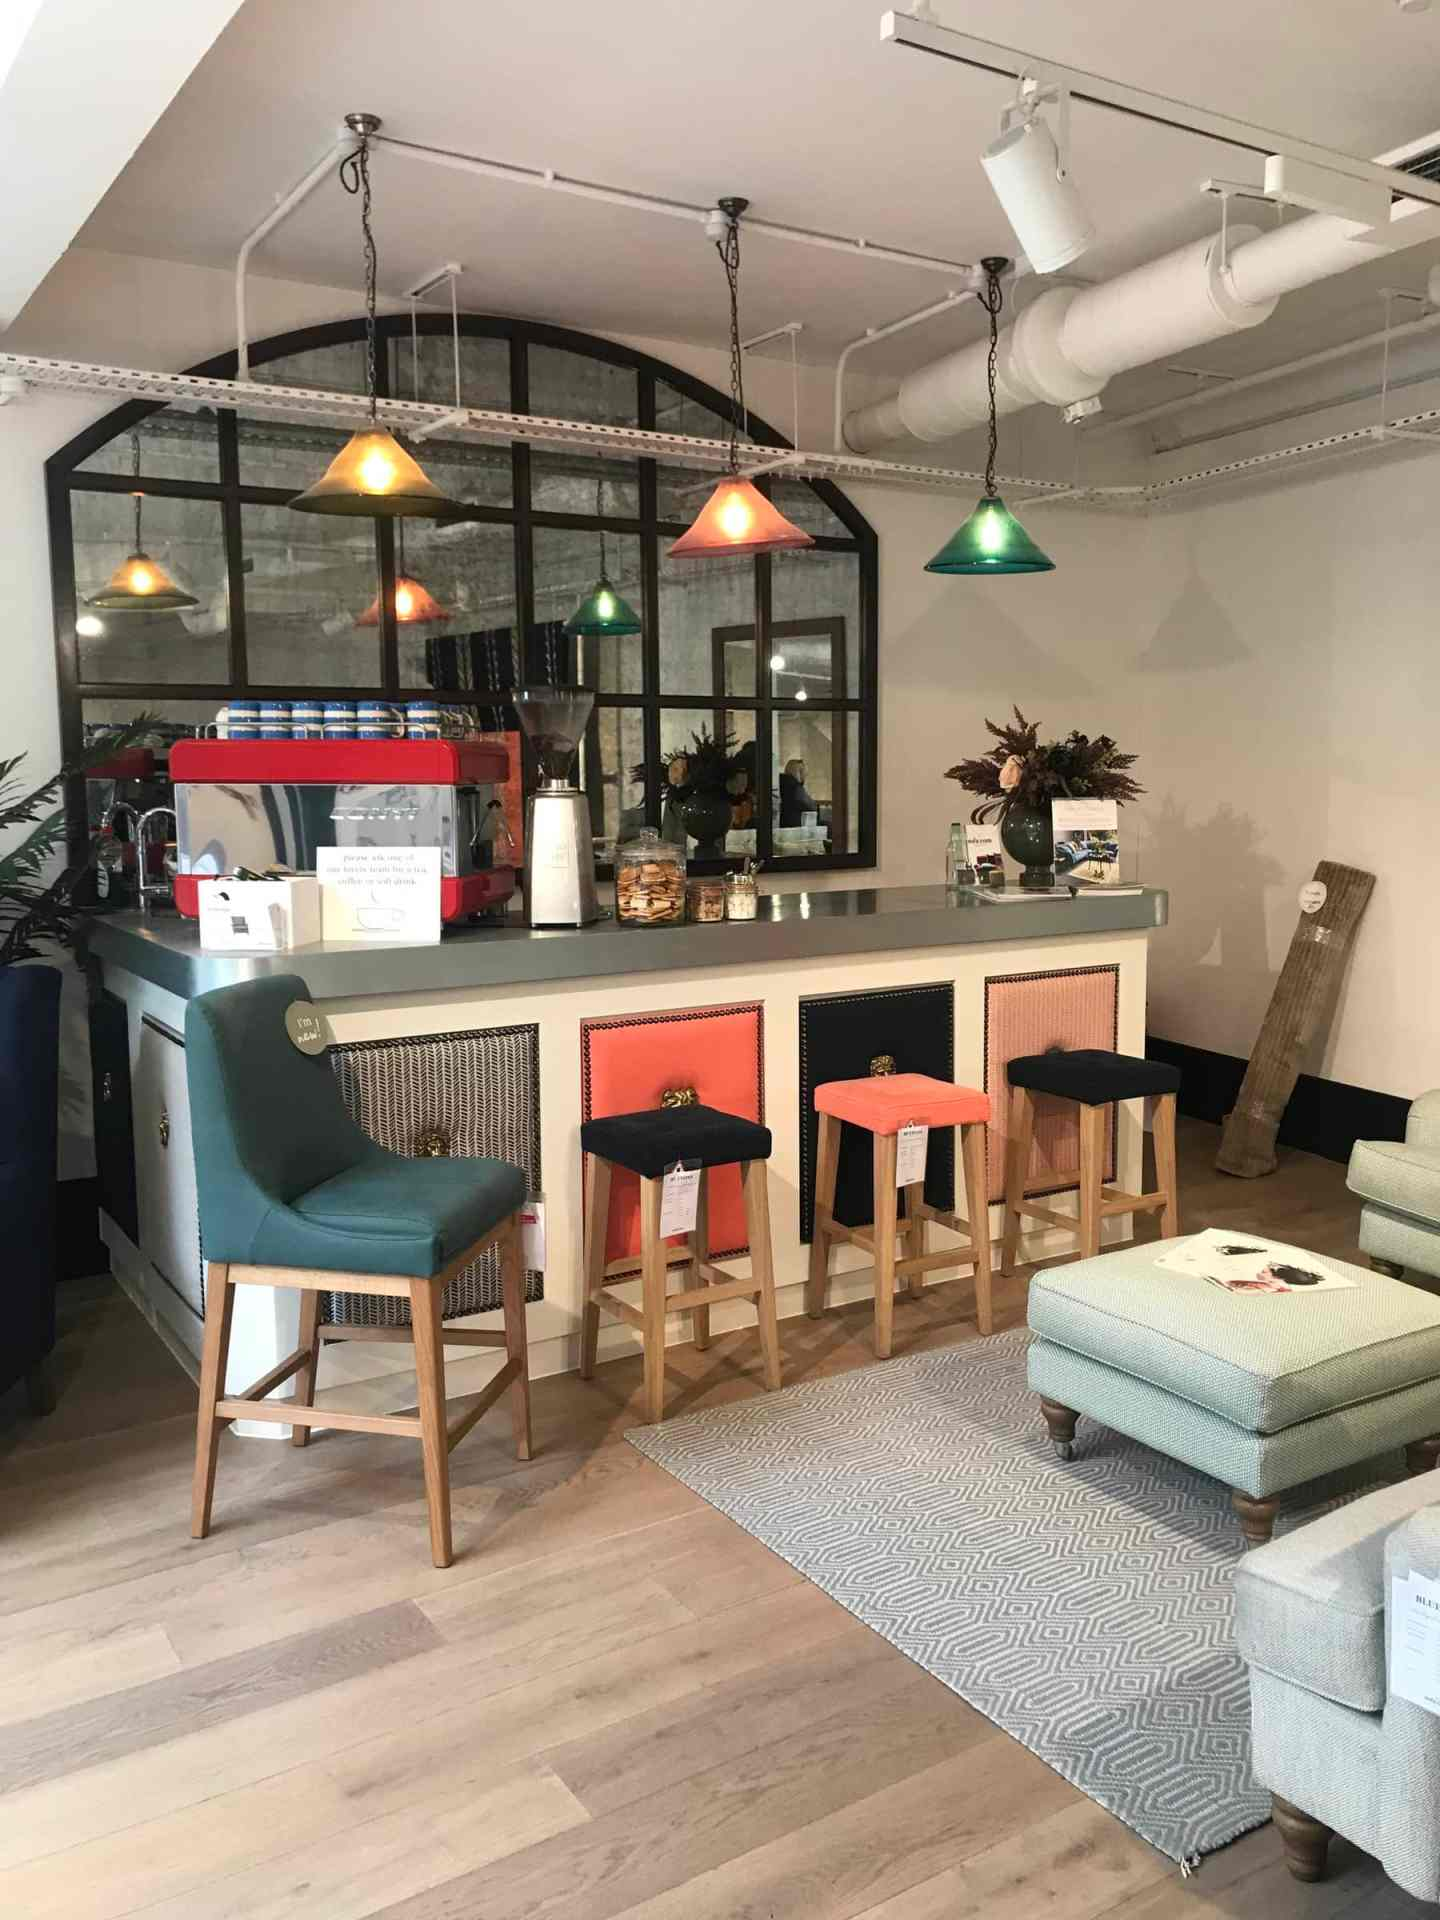 Loved the colour scheme of the sofa.com bar area. So much inspiration everywhere